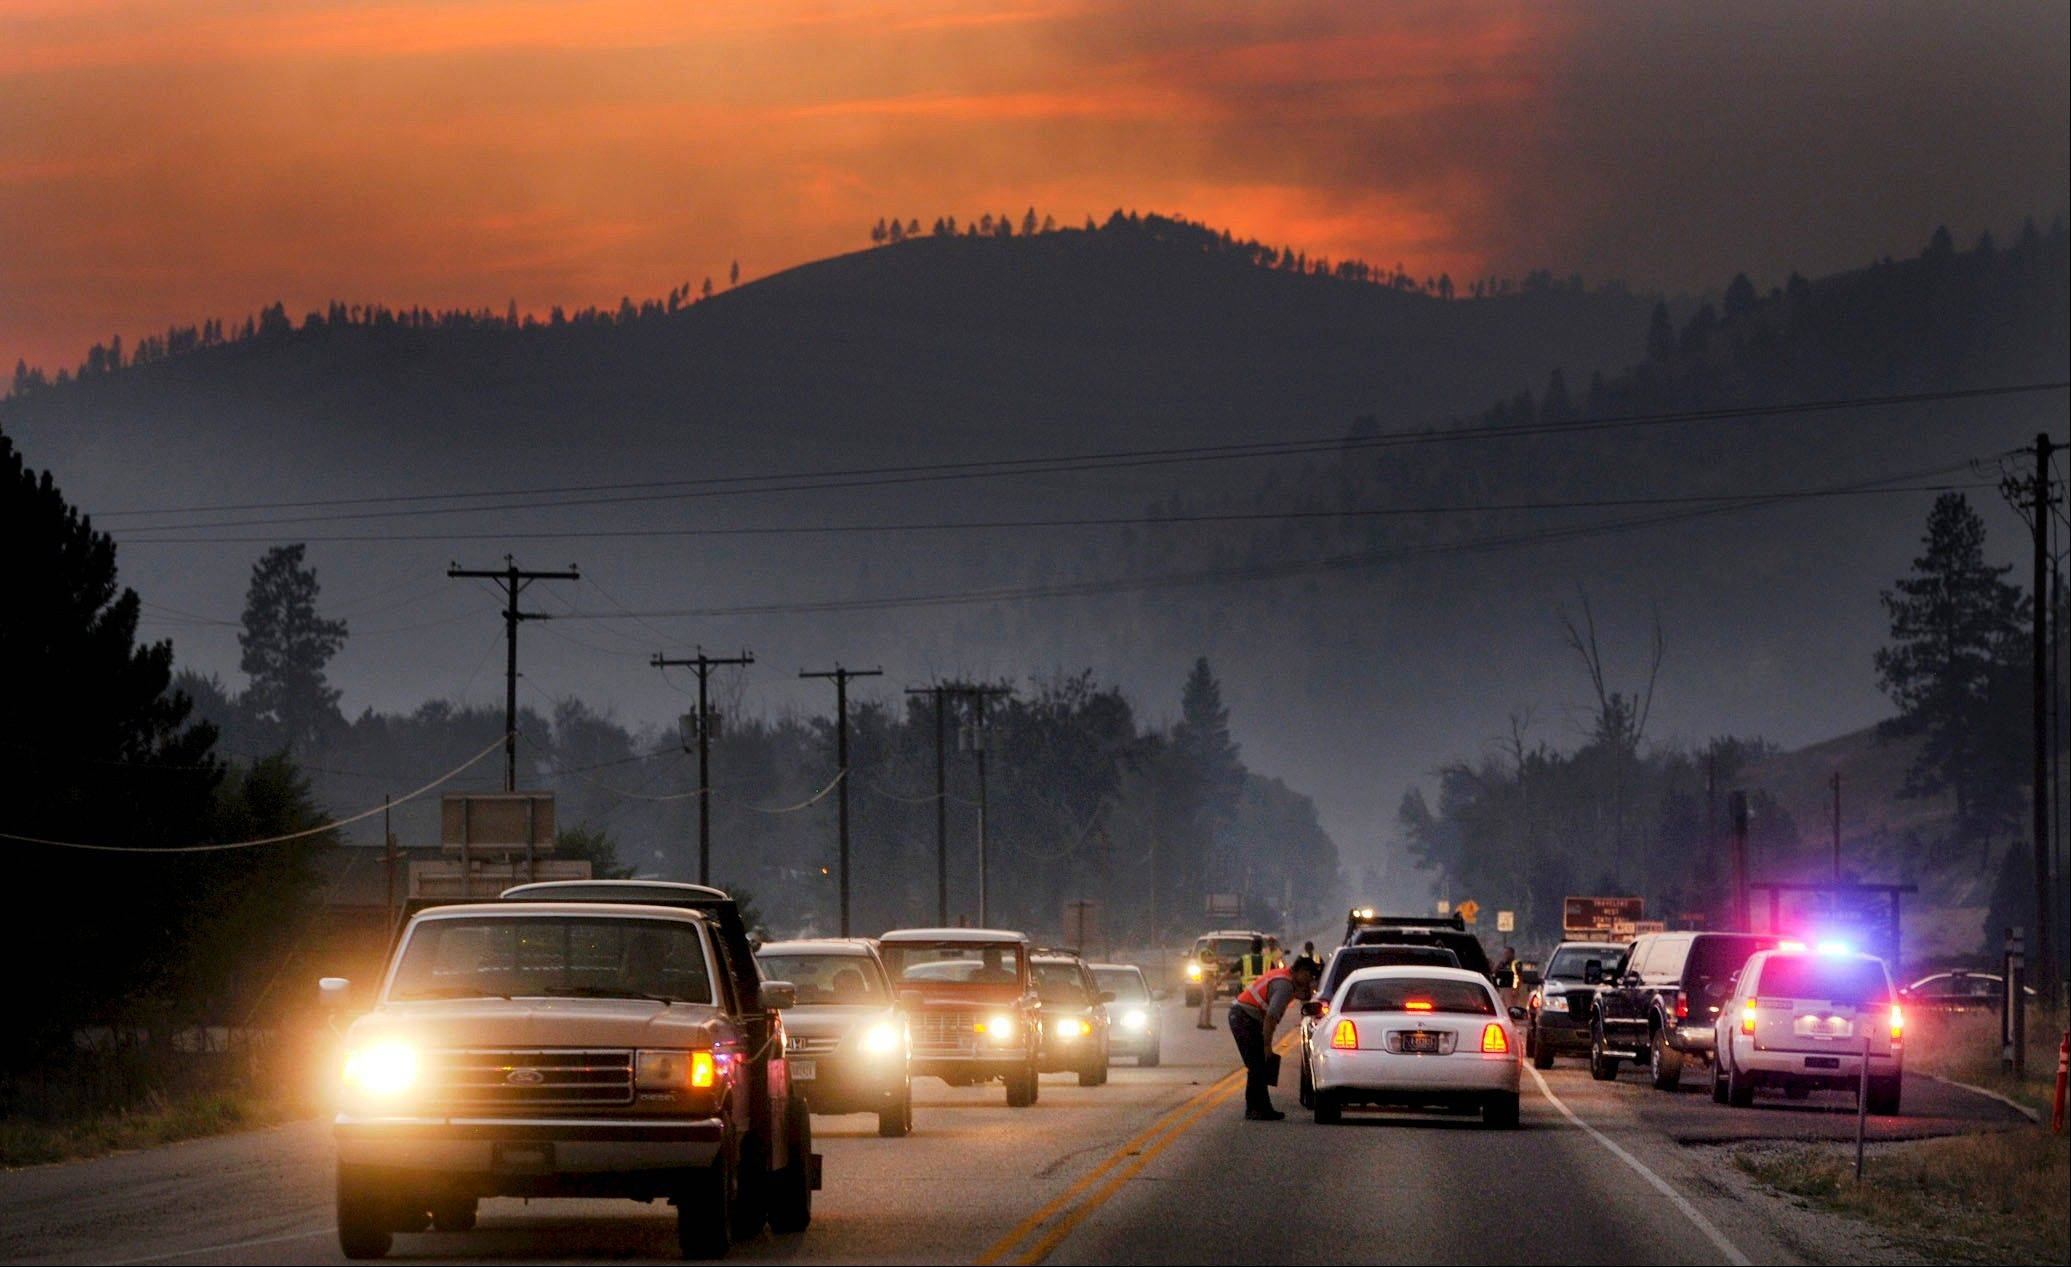 A line of evacuees, forced from the Lolo Creek drainage near Lolo, Mont., by the Lolo Creek Complex of fires, passes through a roadblock Tuesday evening, August 20, 2013, at the intersection of U.S. Highway 12 and U.S. Highway 93 South. The fire complex grew to 8,000 acres Tuesday evening forcing more evacuations.